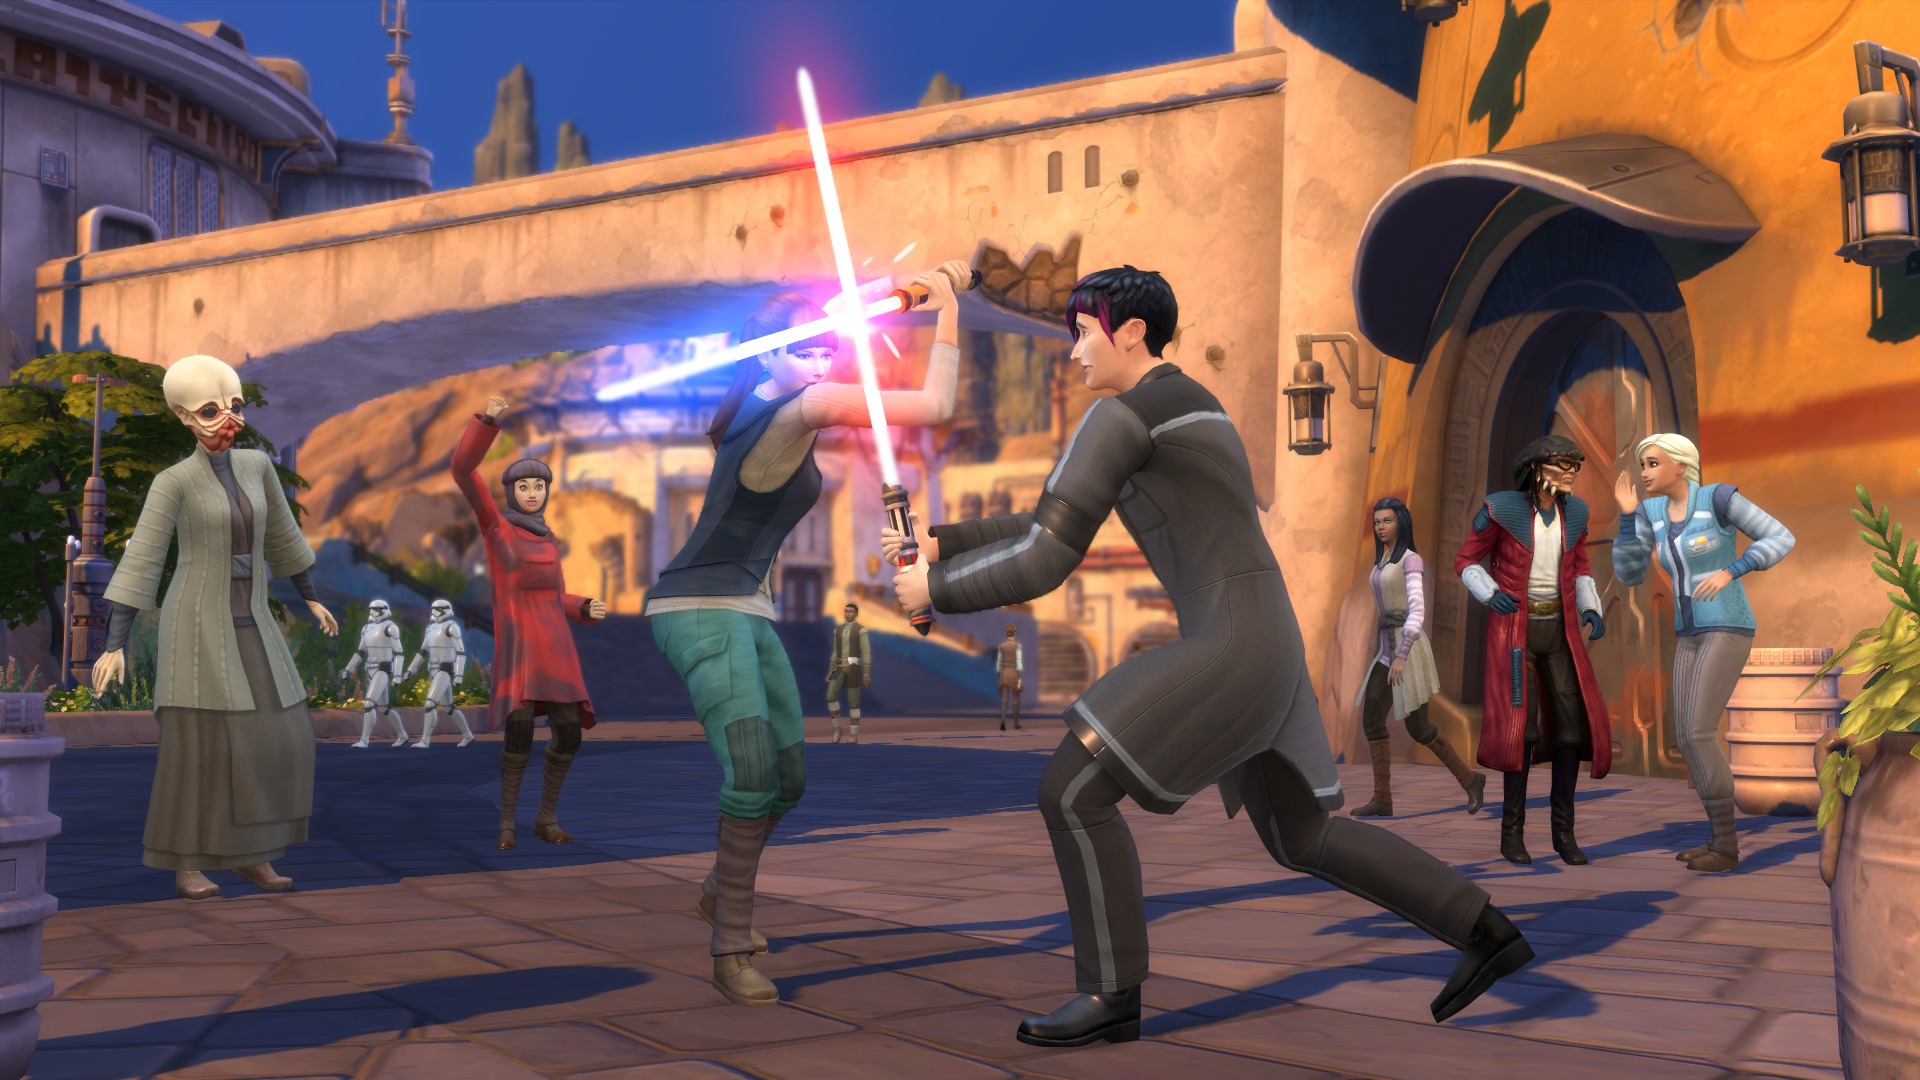 Les Sims 4 Journey to Batuu Lightsaber